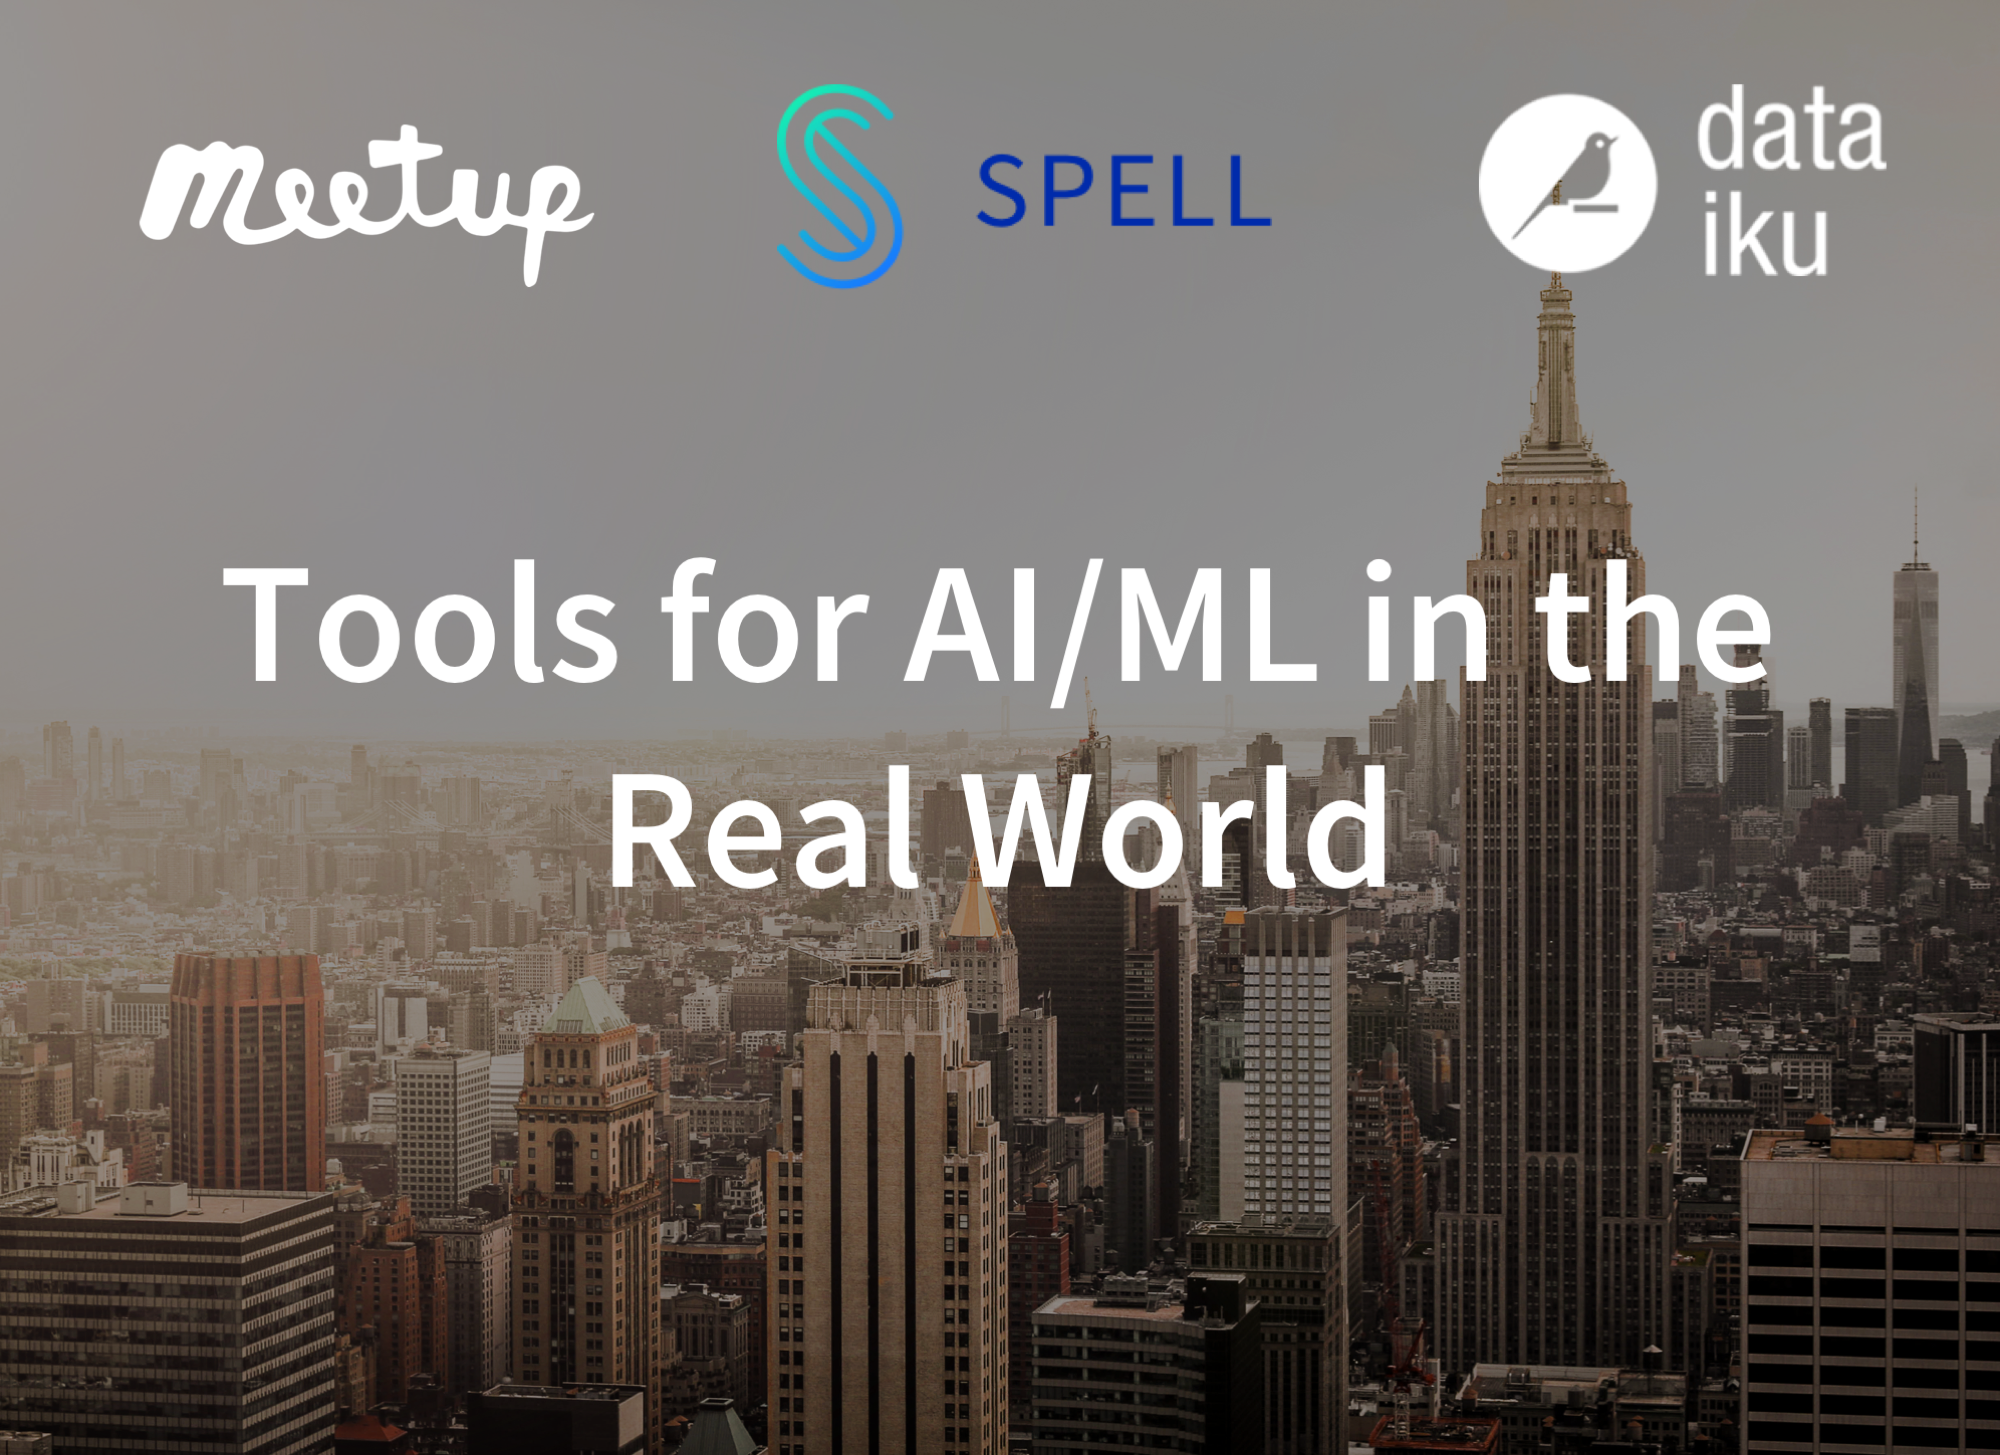 Tools for AI/ML in the Real World